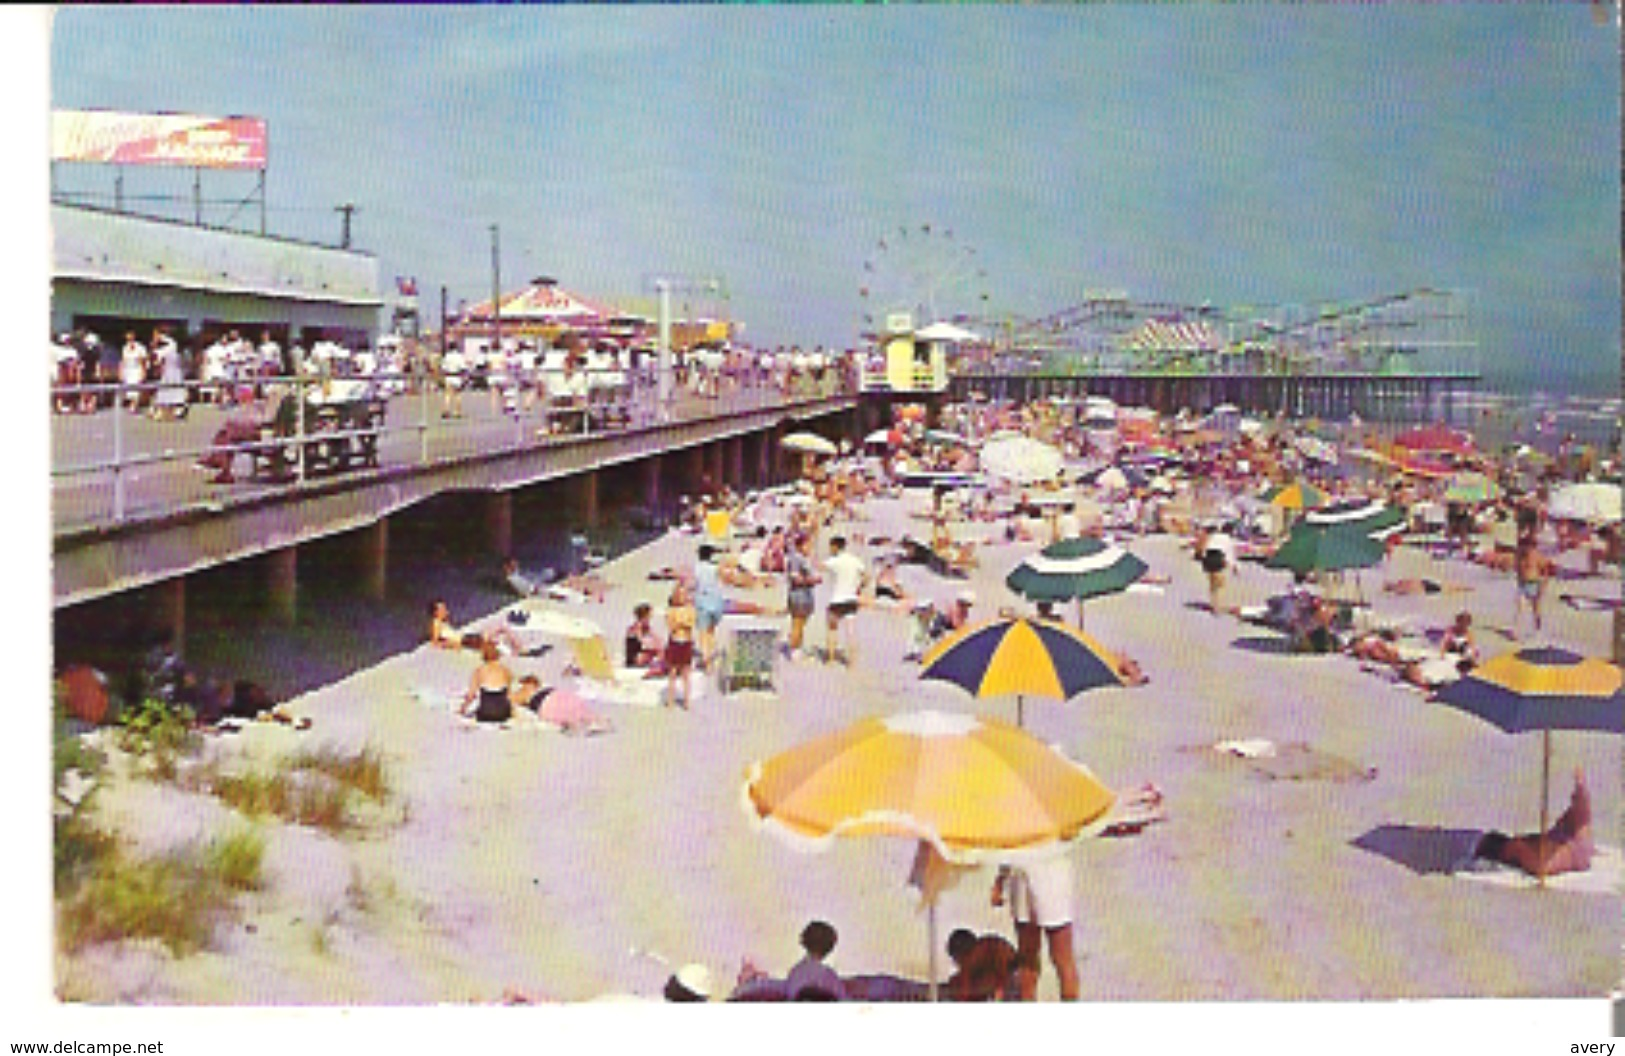 Boardwalk And Beach View, Wildwood, New Jersey - Other